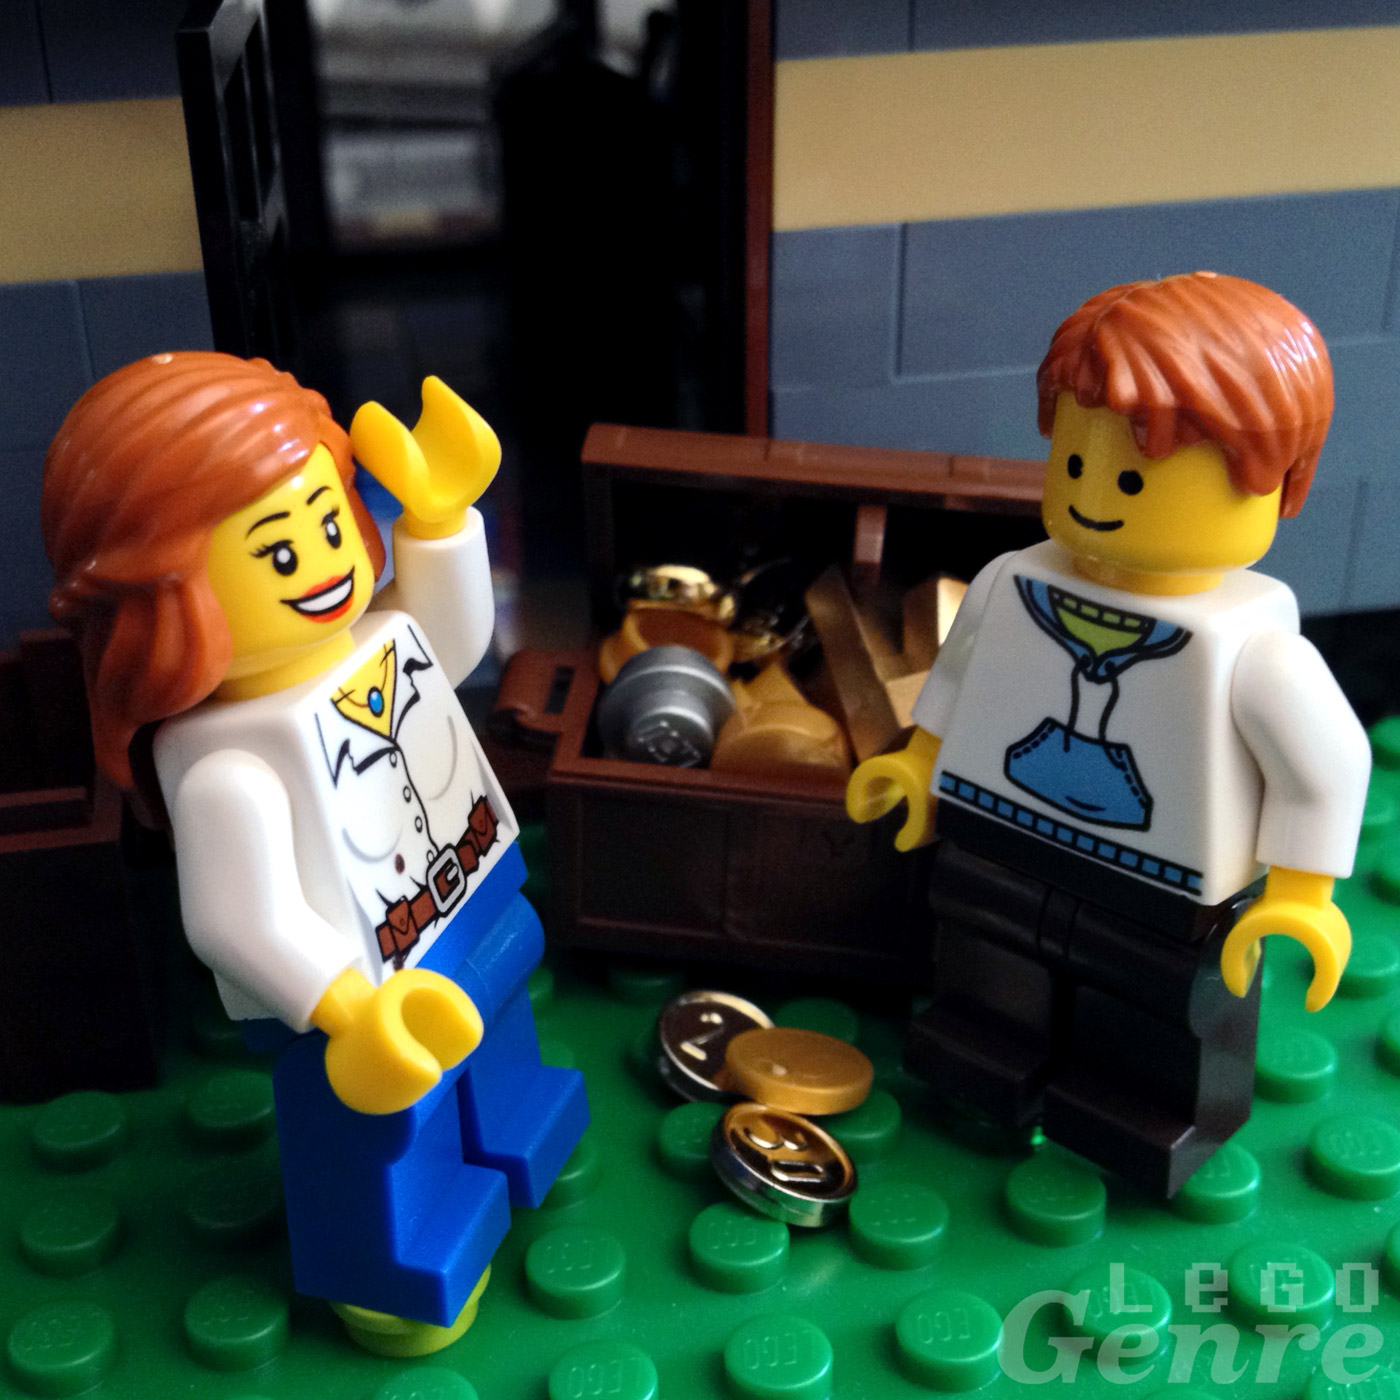 LegoGenre 00378: Mother's Day Surprise